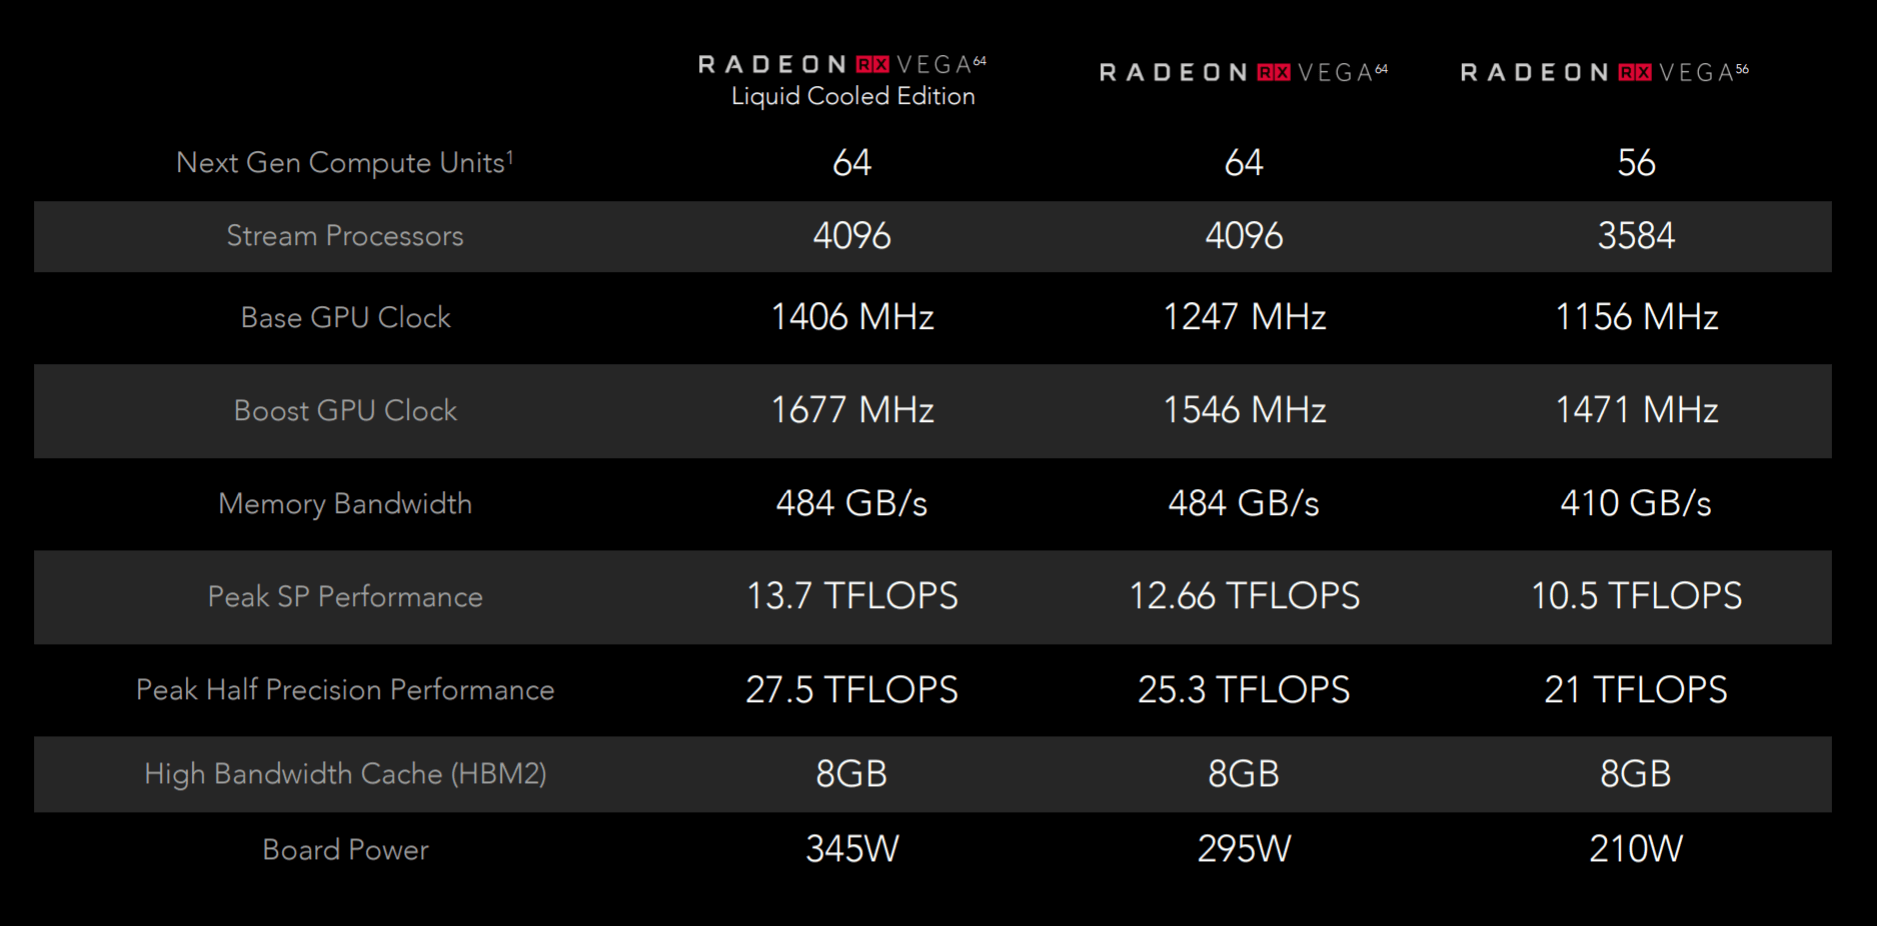 Amd Radeon Rx Vega 64 And Radeon Rx Vega 56 Official Specs And Pricing Are Out